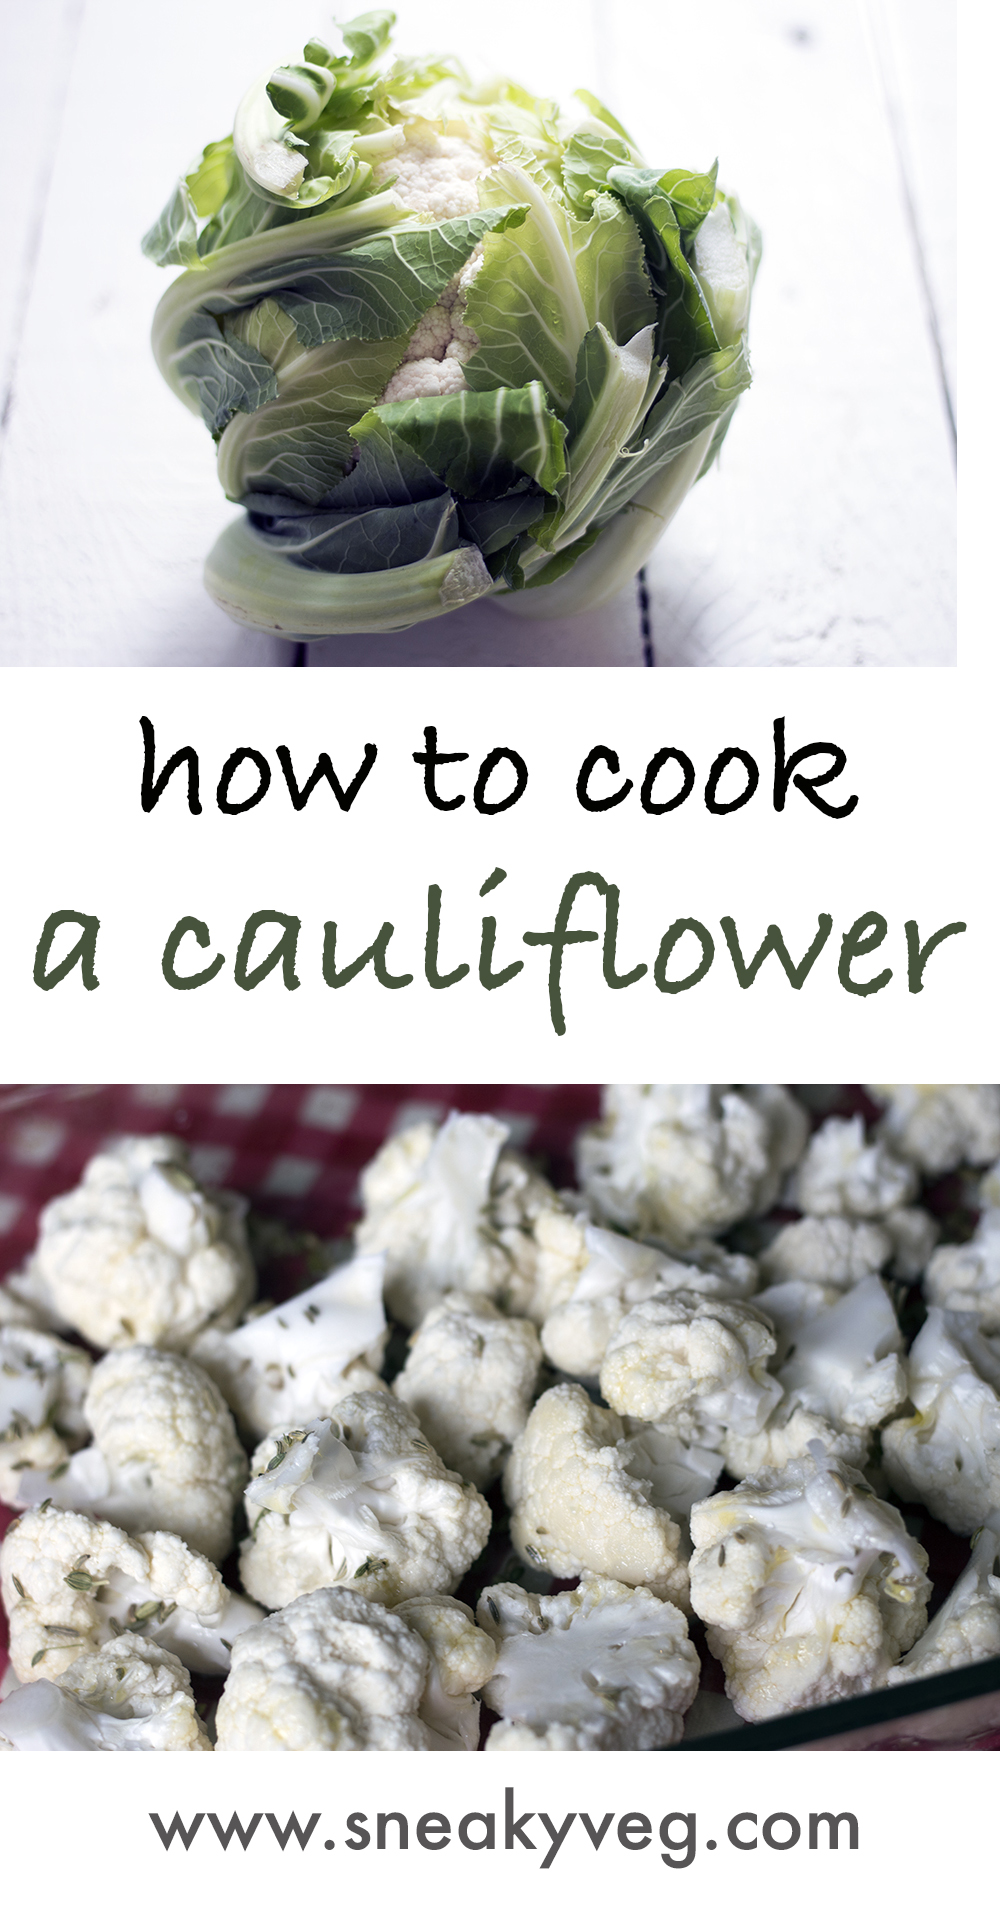 how-to-cook-a-cauliflower